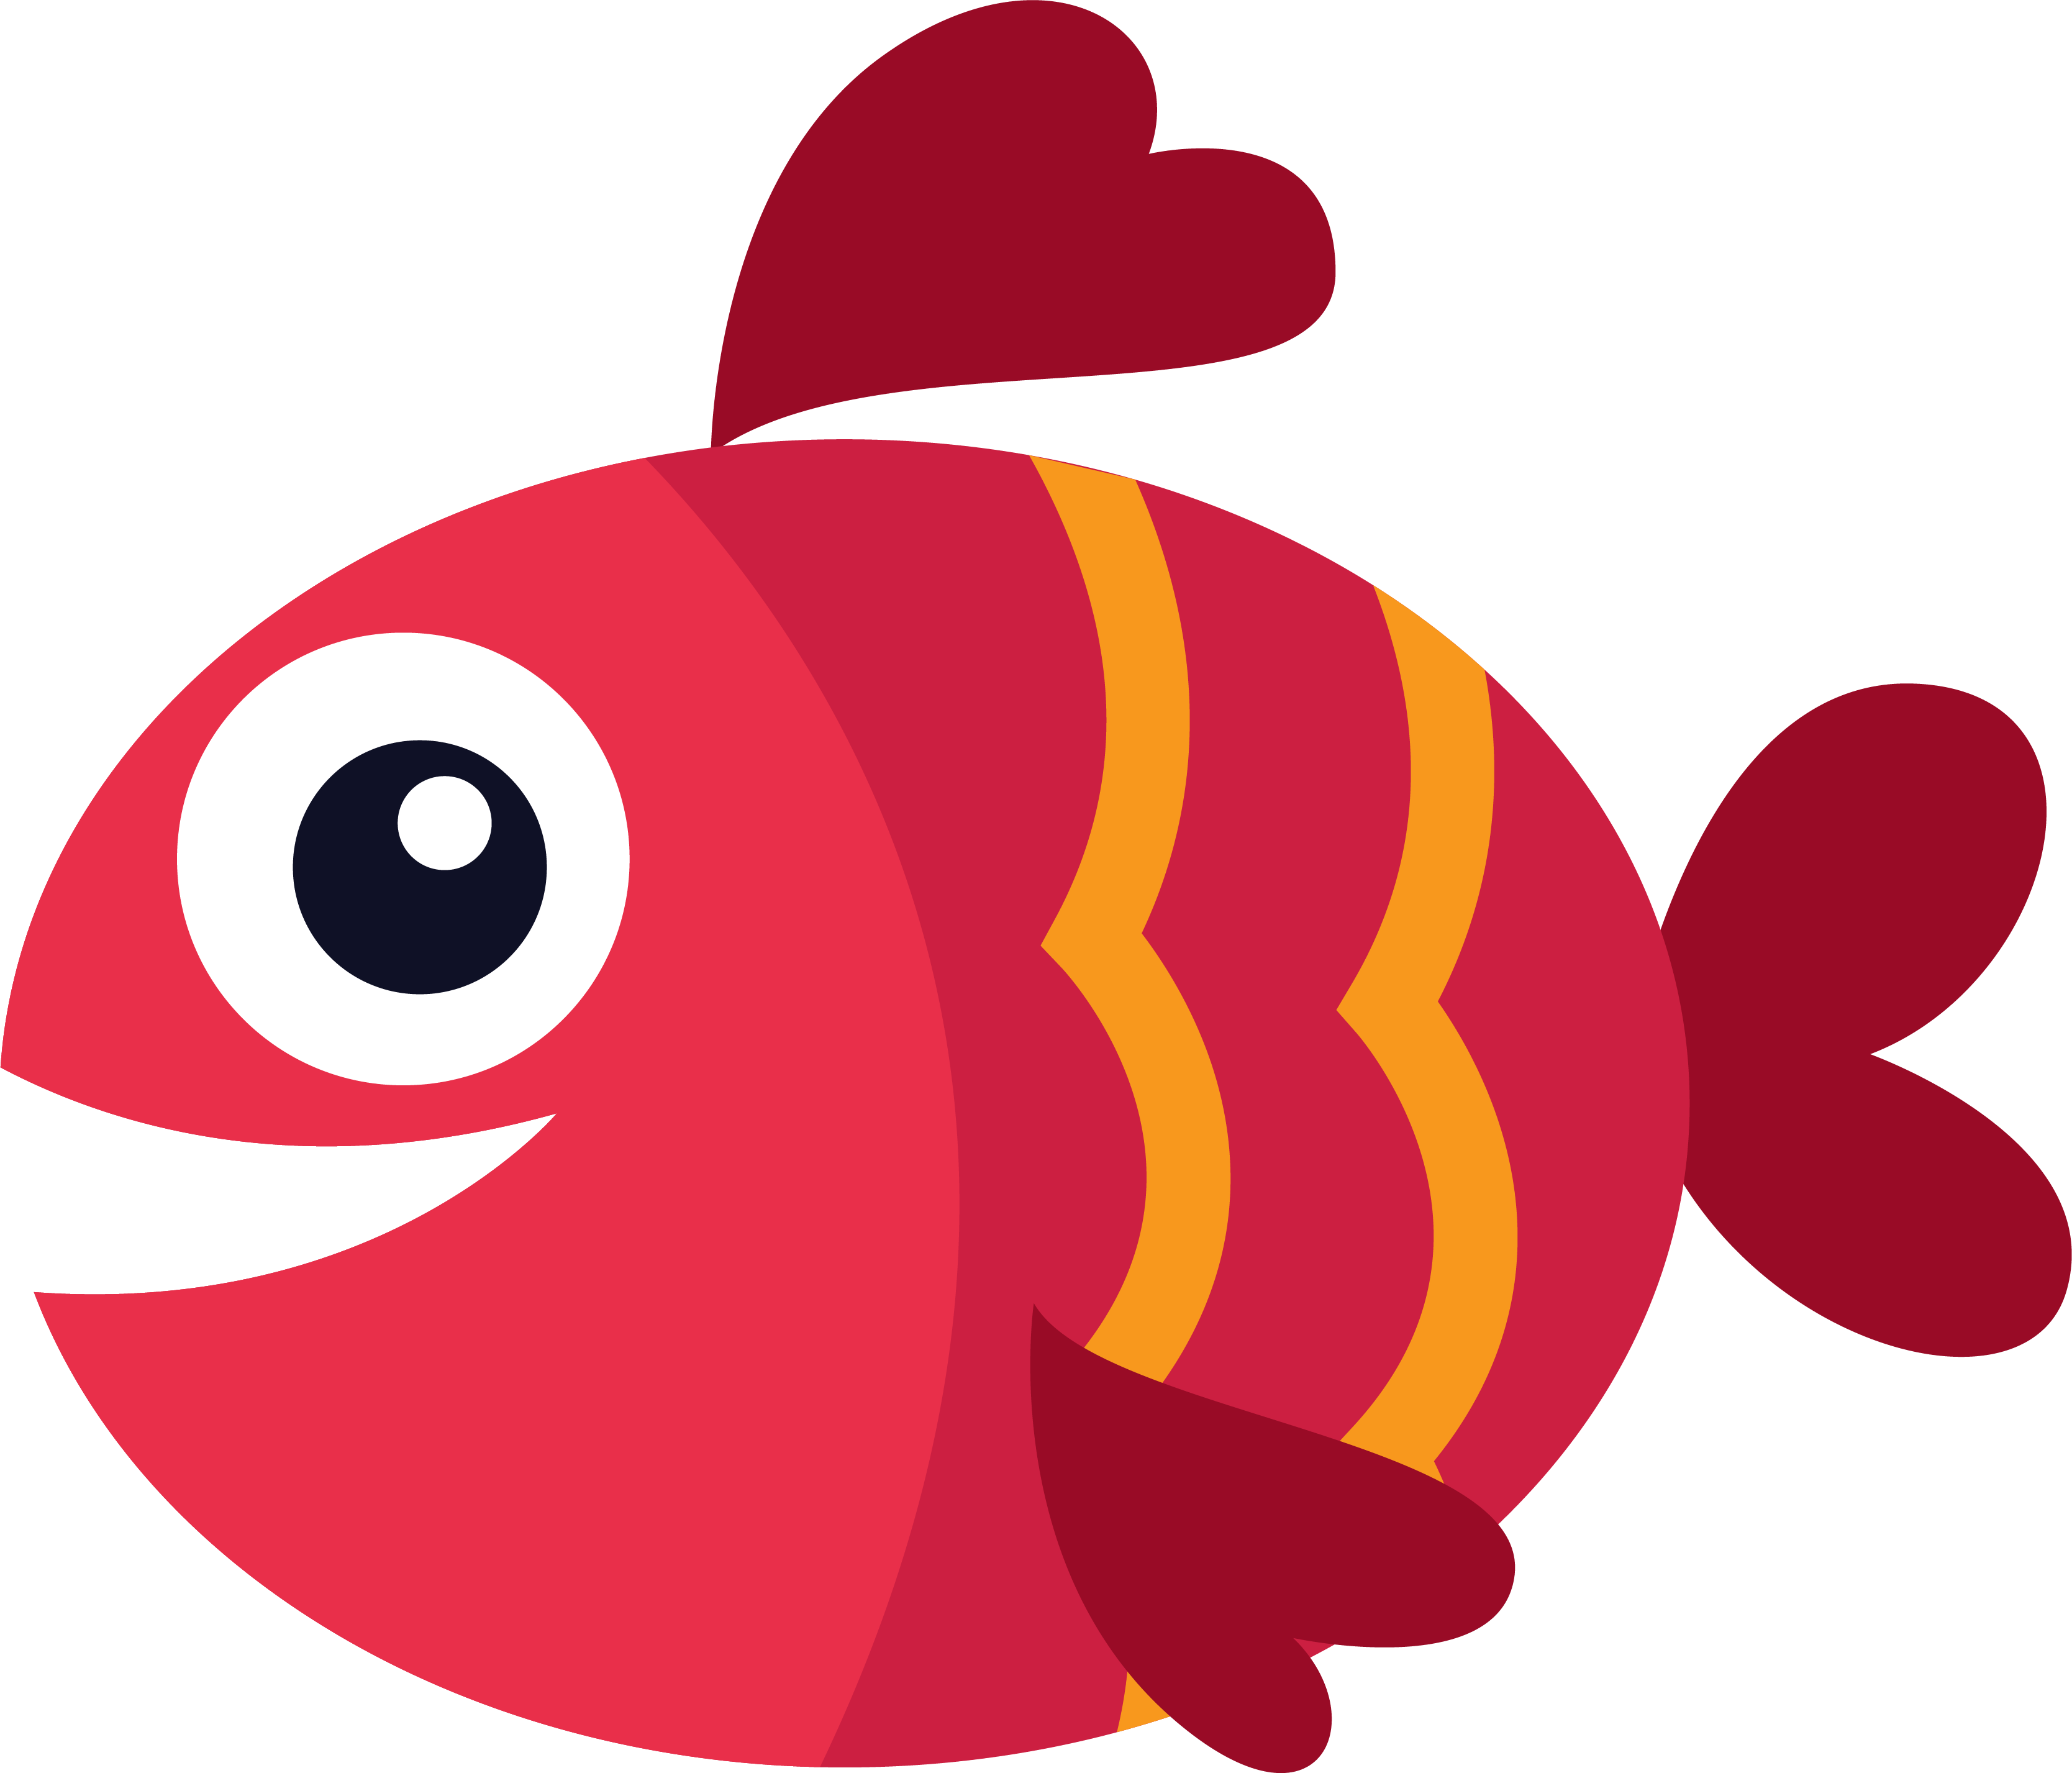 Fish Bowl Clipart at GetDrawings.com | Free for personal use Fish ...